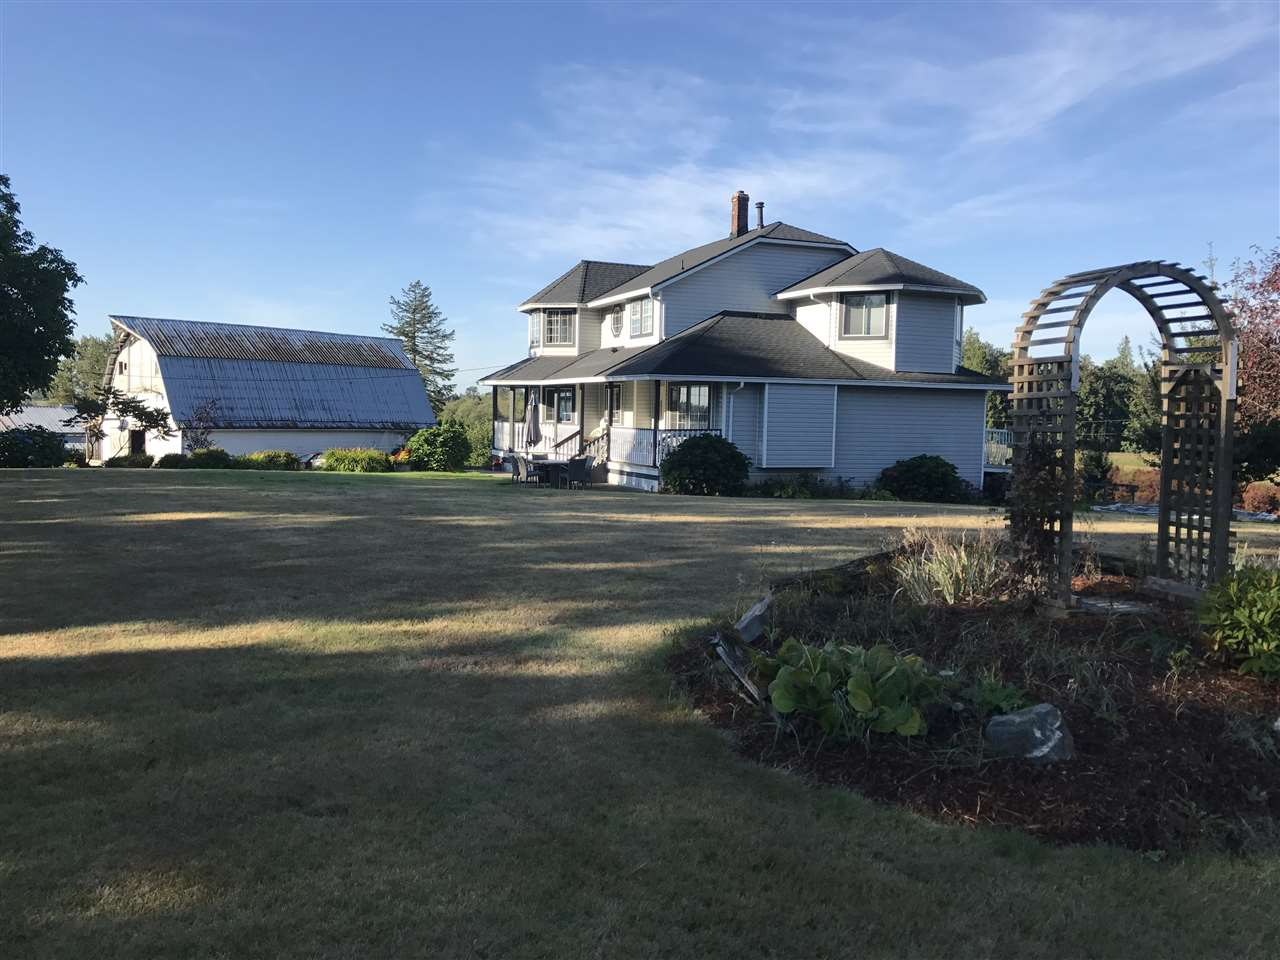 First time on the market in approx 50 years. This beautiful, rolling 34.67 acres features 2 homes plus a 1 bdrm Park model that can be negotiated with the purchase. The main home is perched high on the northeast corner with great views over the farmland. One home is a 1 bdrm/1bath bungalow. 32'x160' workshop and two former chicken barns (40'x200' doubledeck and 40'x60' doubledeck). Lots of quality water from the well. Check out the video for the overhead views.